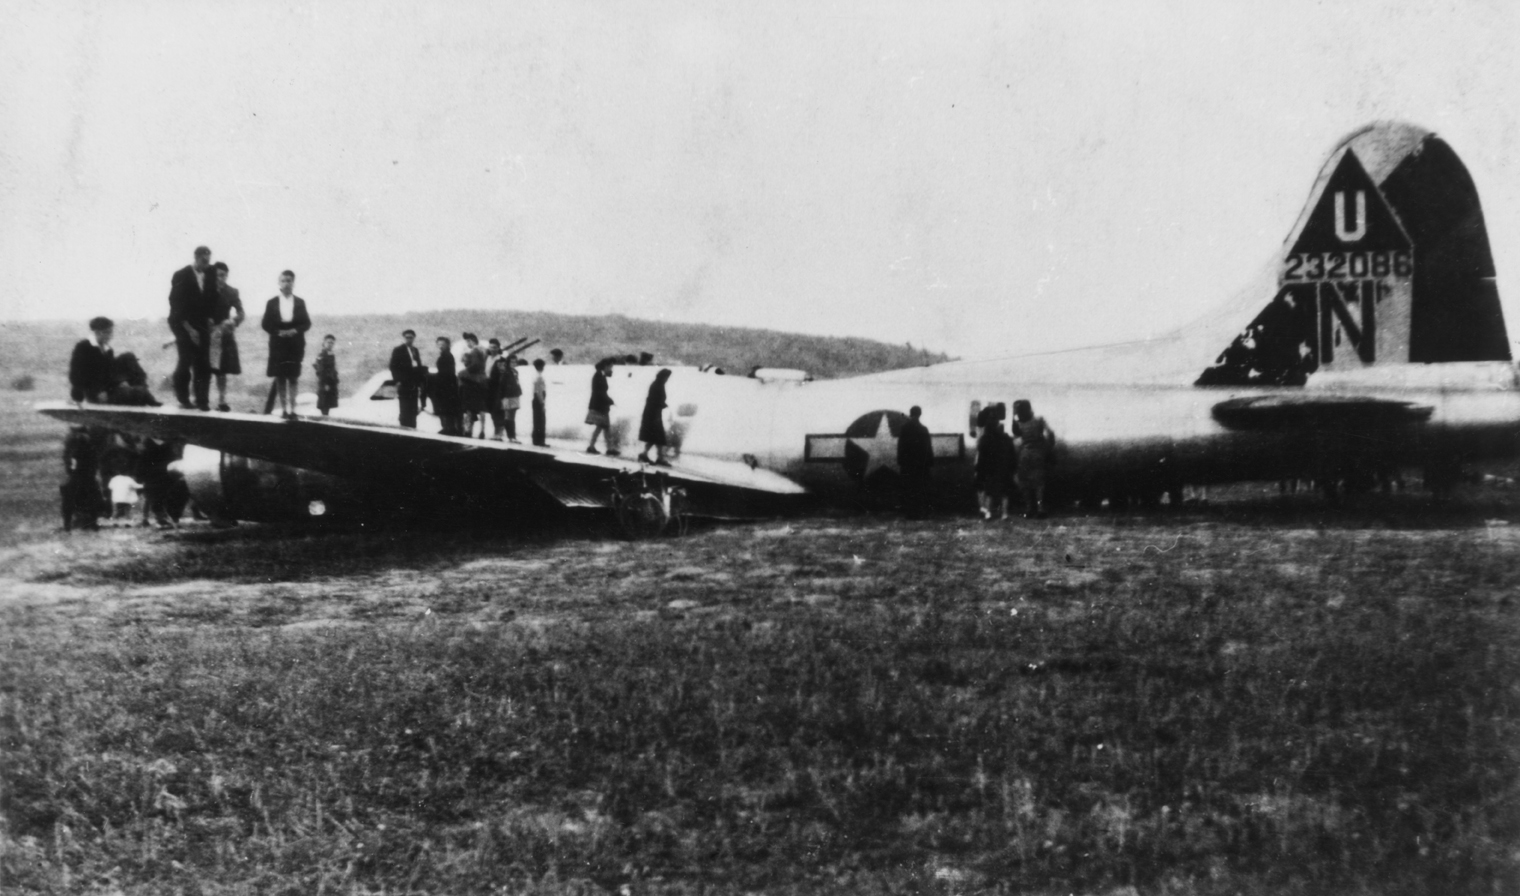 B-17 #42-32086 / You Never Know